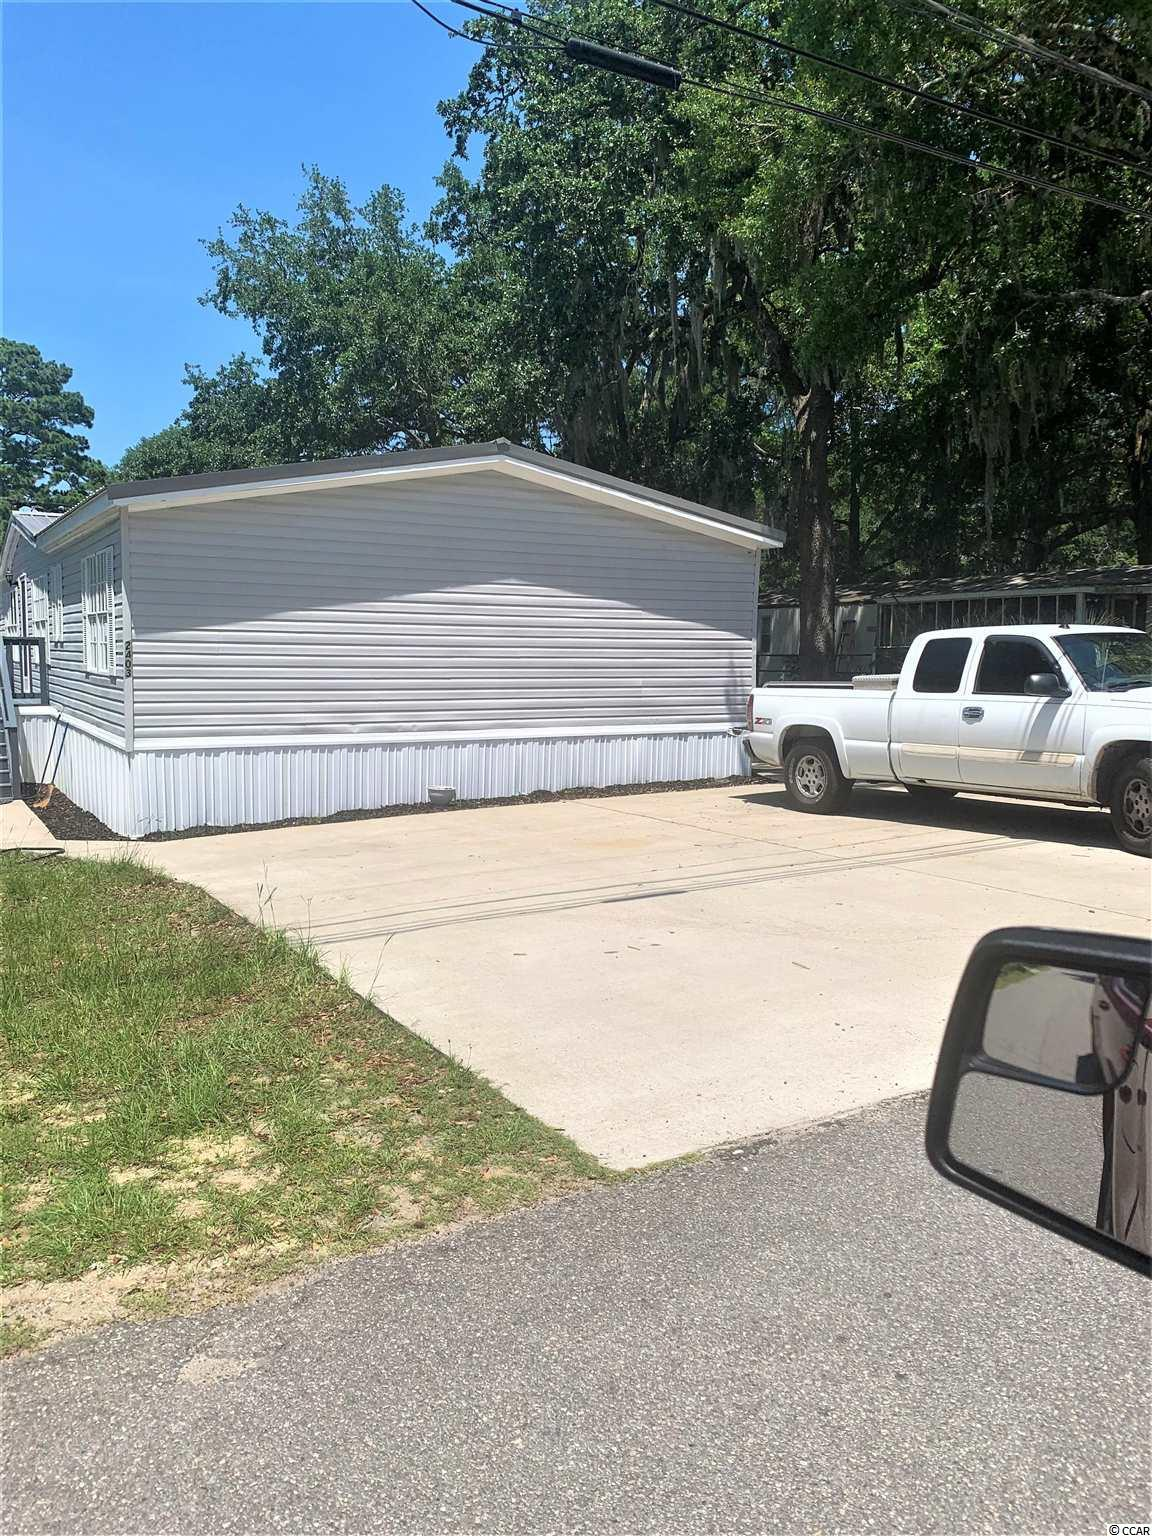 This home is the perfect vacation home or full time home in The Grove in Cherry Grove North Myrtle Beach. 4 bedrooms, 2 full baths, Large kitchen, Den and living room. Nice freshly stained deck for enjoying the summer breezes. NO HOA and a short golf cart ride to the beautiful Cherry Grove Beach, shopping, entertainment, restaurants and more. Come take a look before it gets gone.